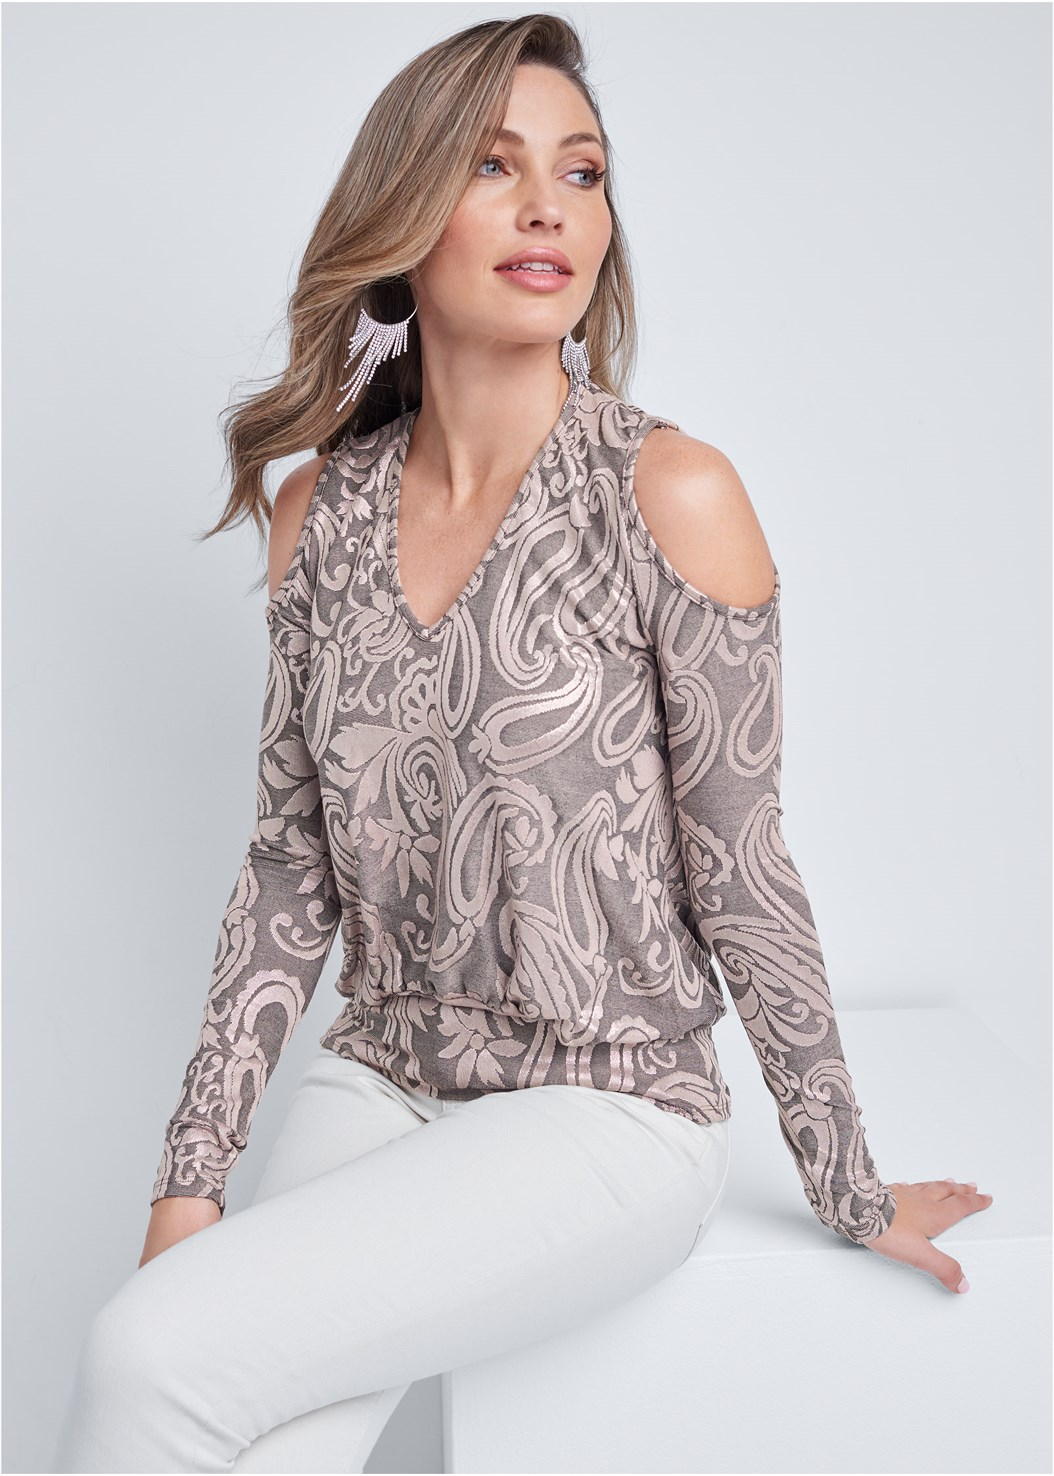 Shimmer Paisley Top,Mid Rise Color Skinny Jeans,Seamless Unlined Bra,Ankle Strap Heels